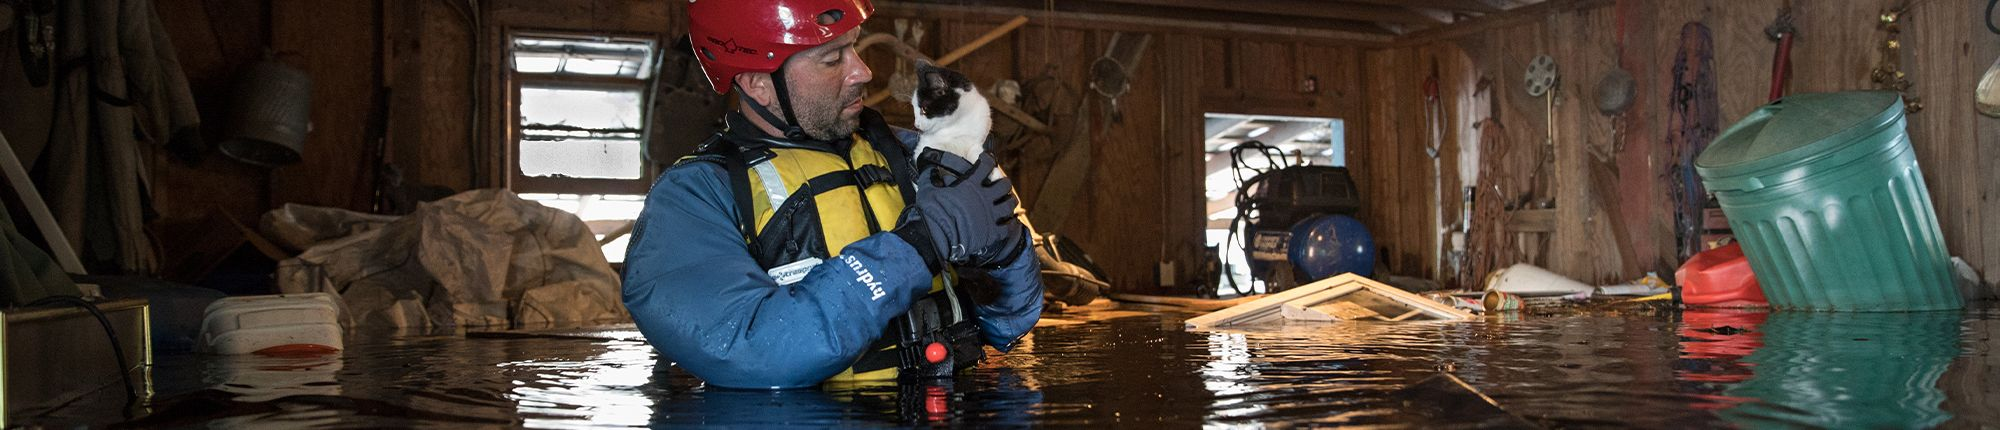 Man rescuing cat from flooded house